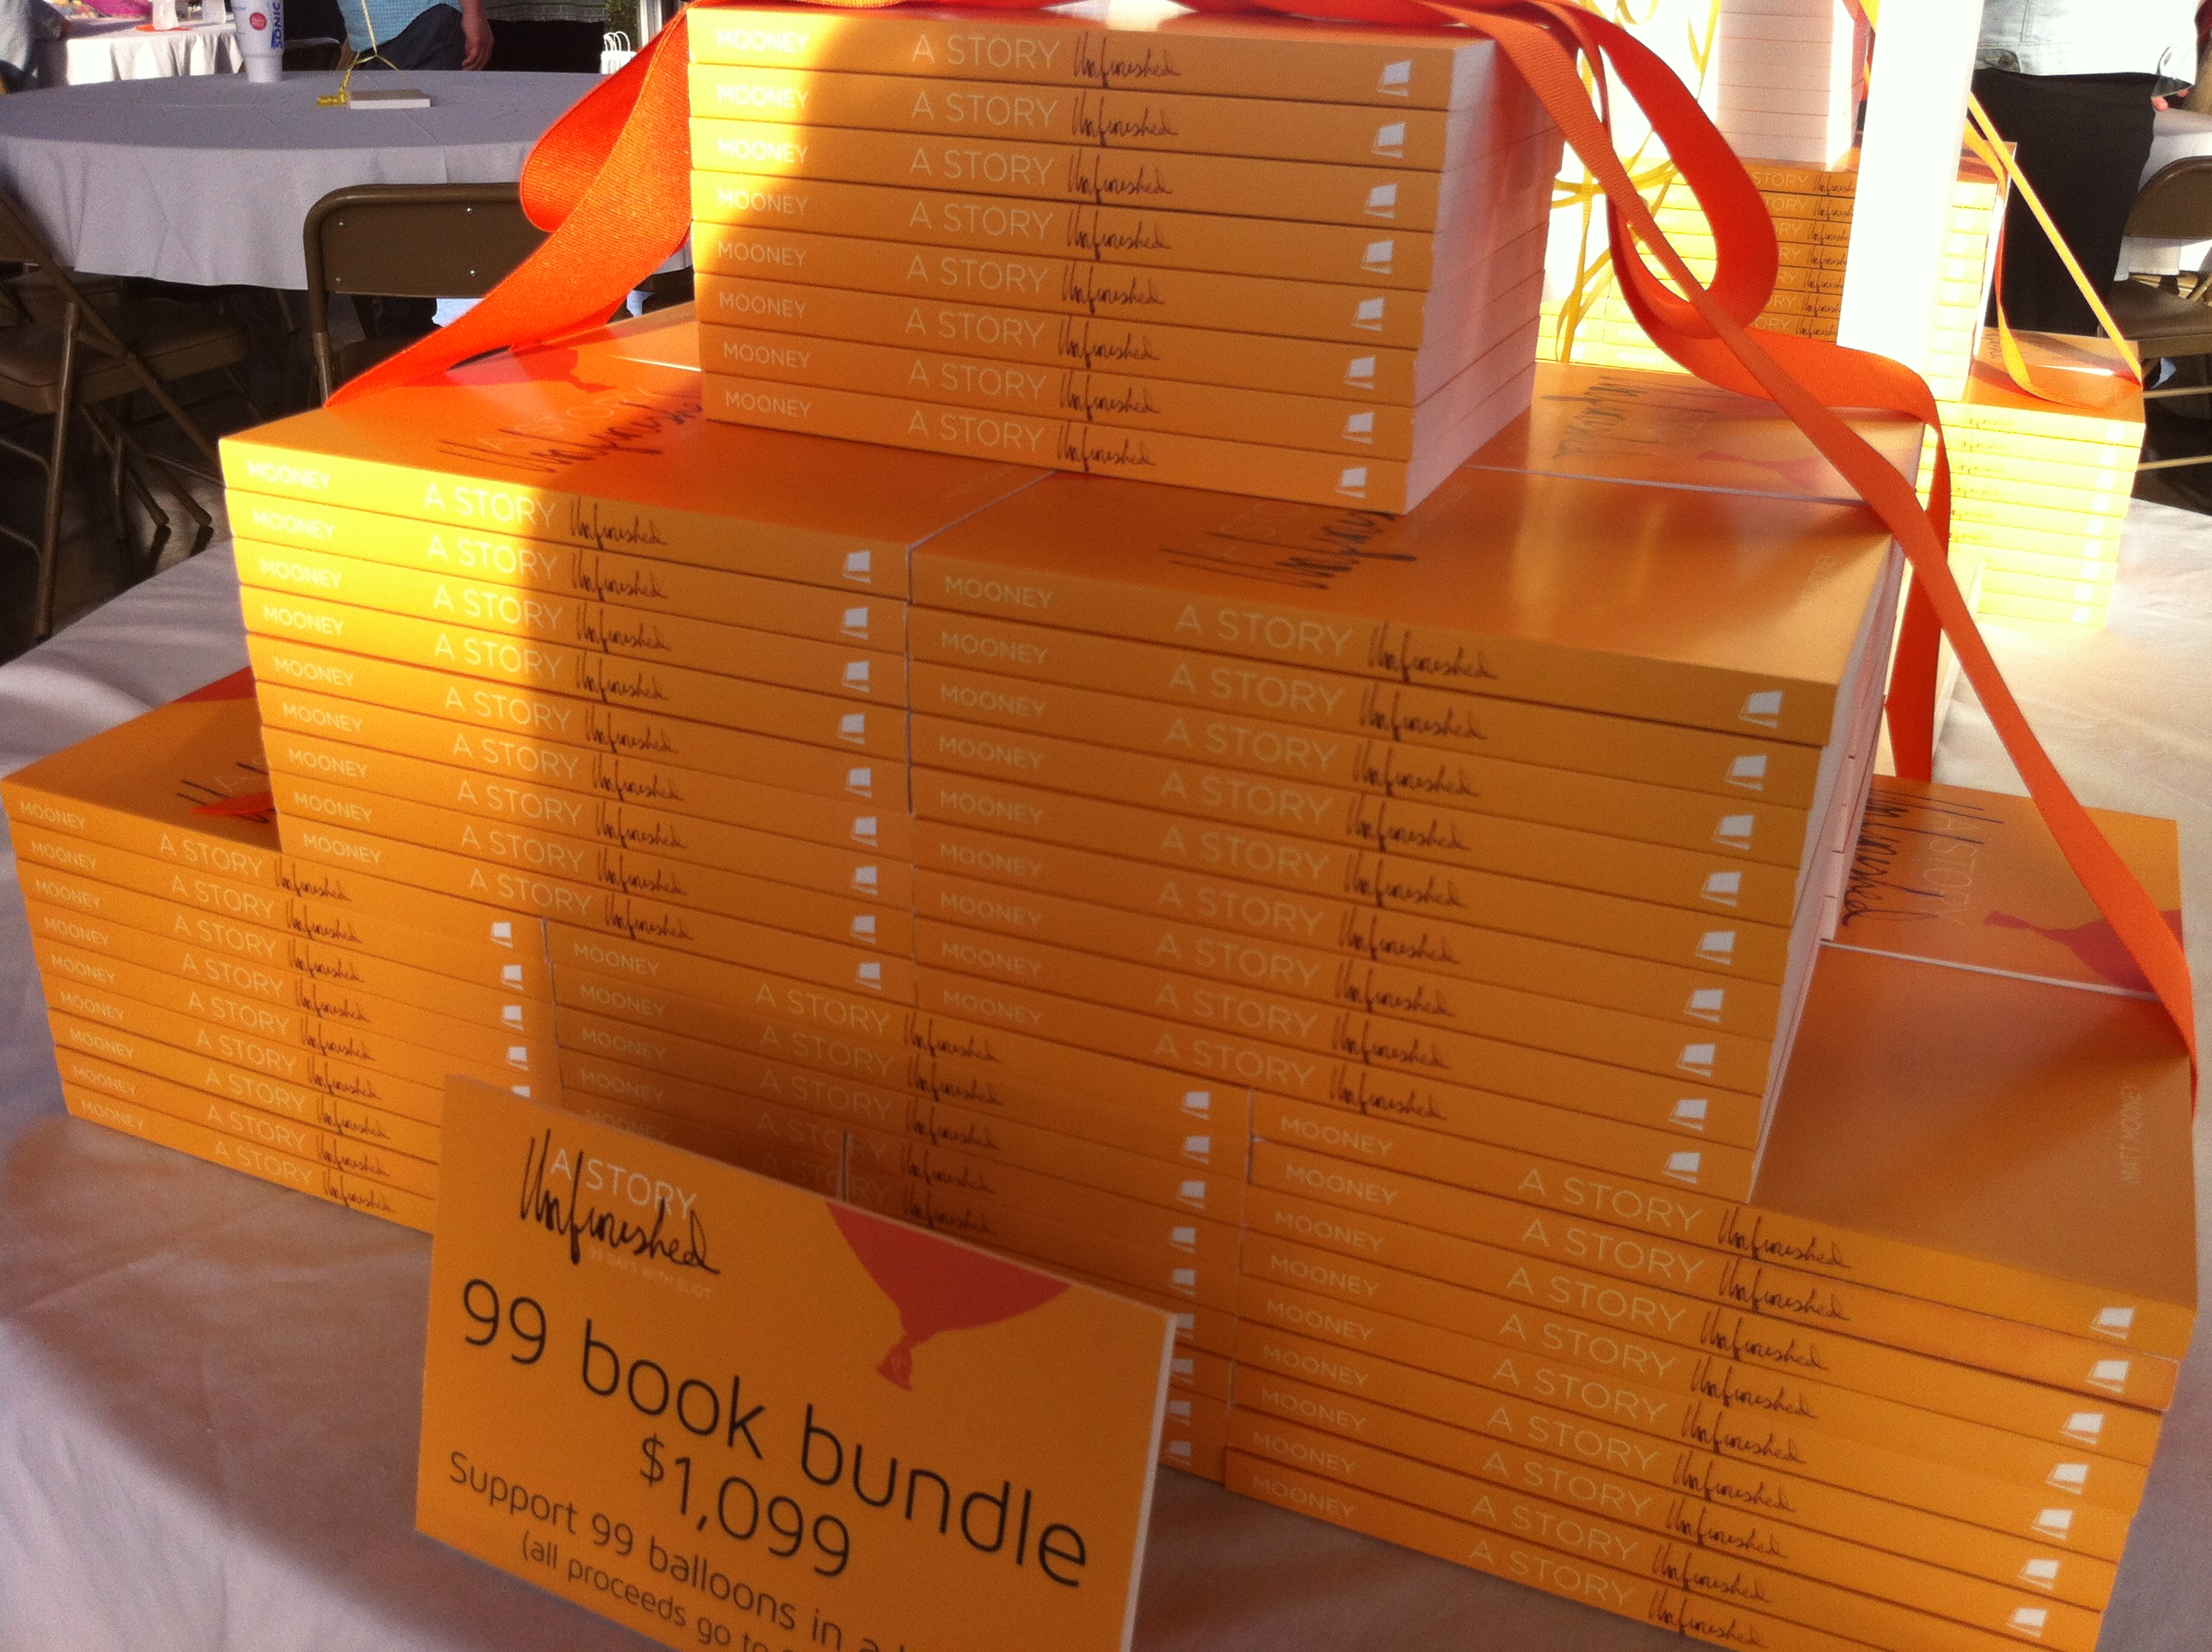 The books on display during the launch